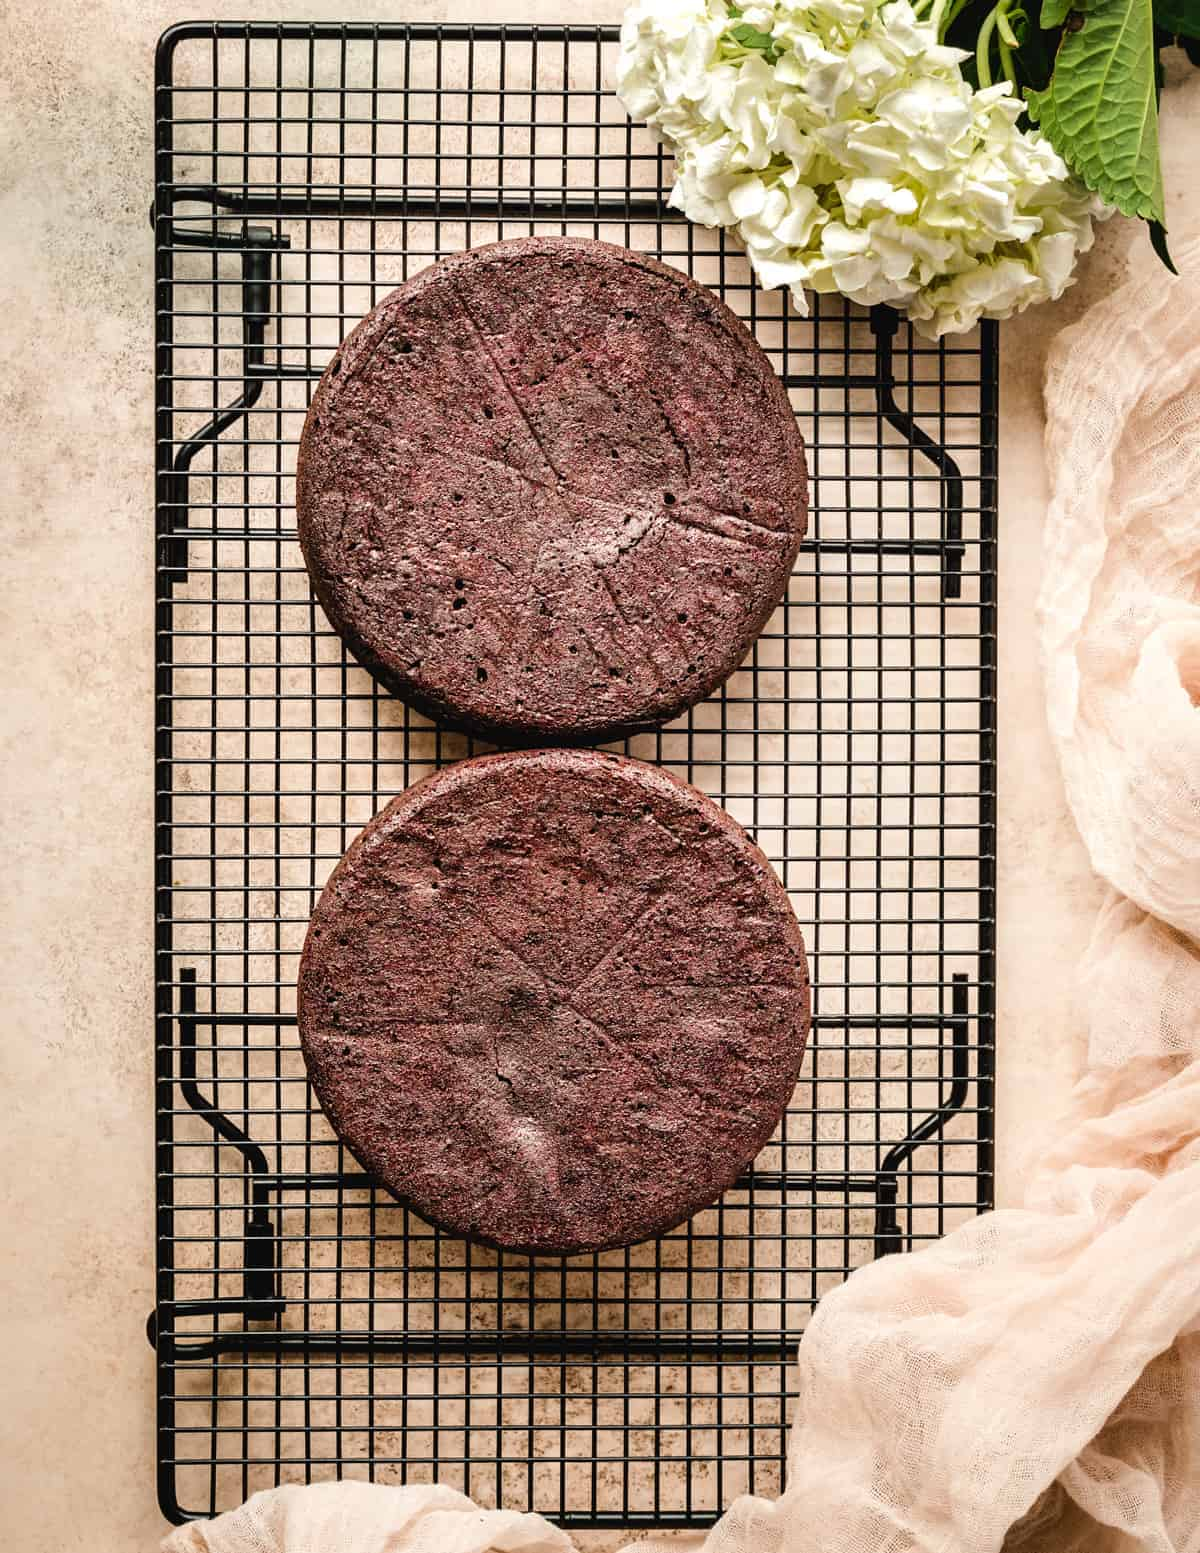 This chocolate torte is made from a dark chocolate torte mix, which makes it really easy to make.